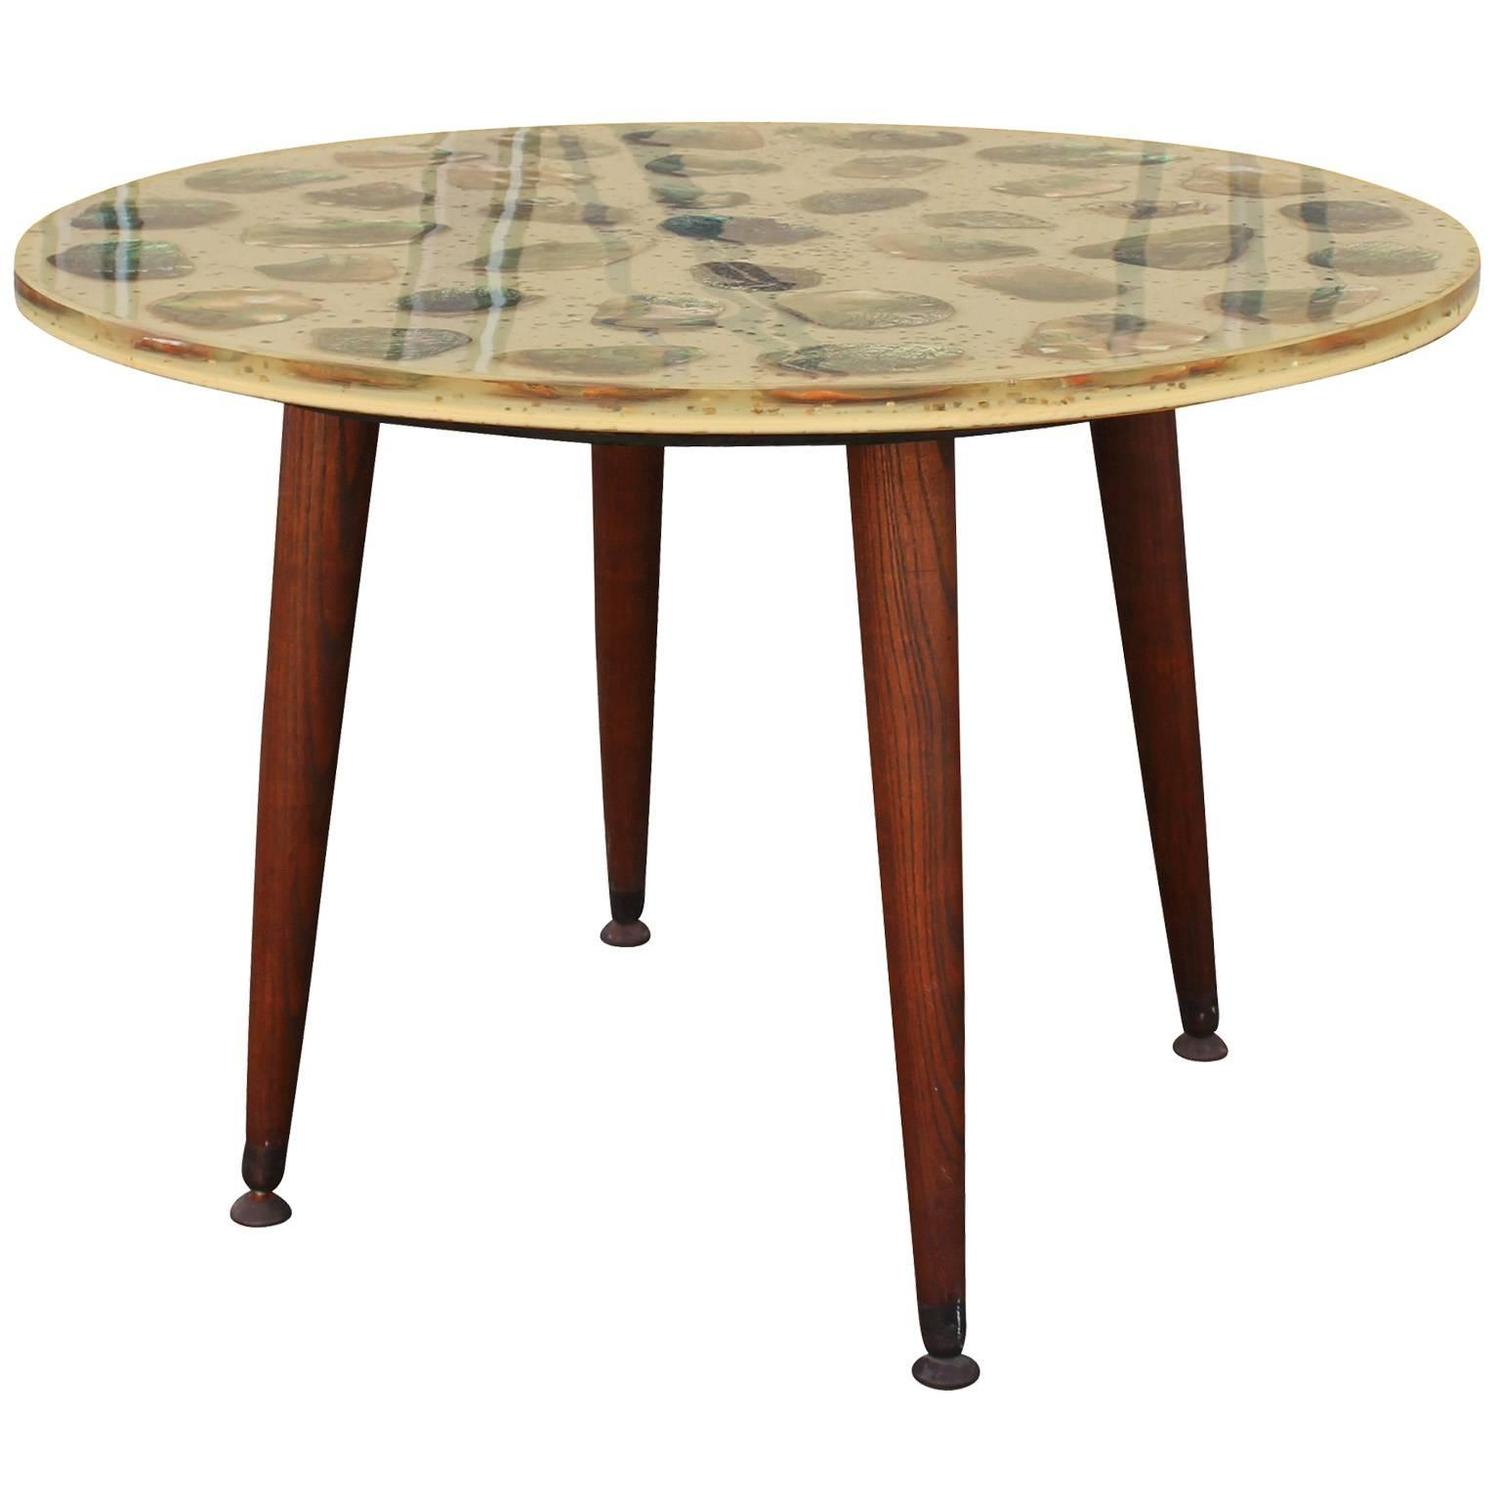 Unusual pair of resin and abalone round side tables at 1stdibs for Unusual round tables